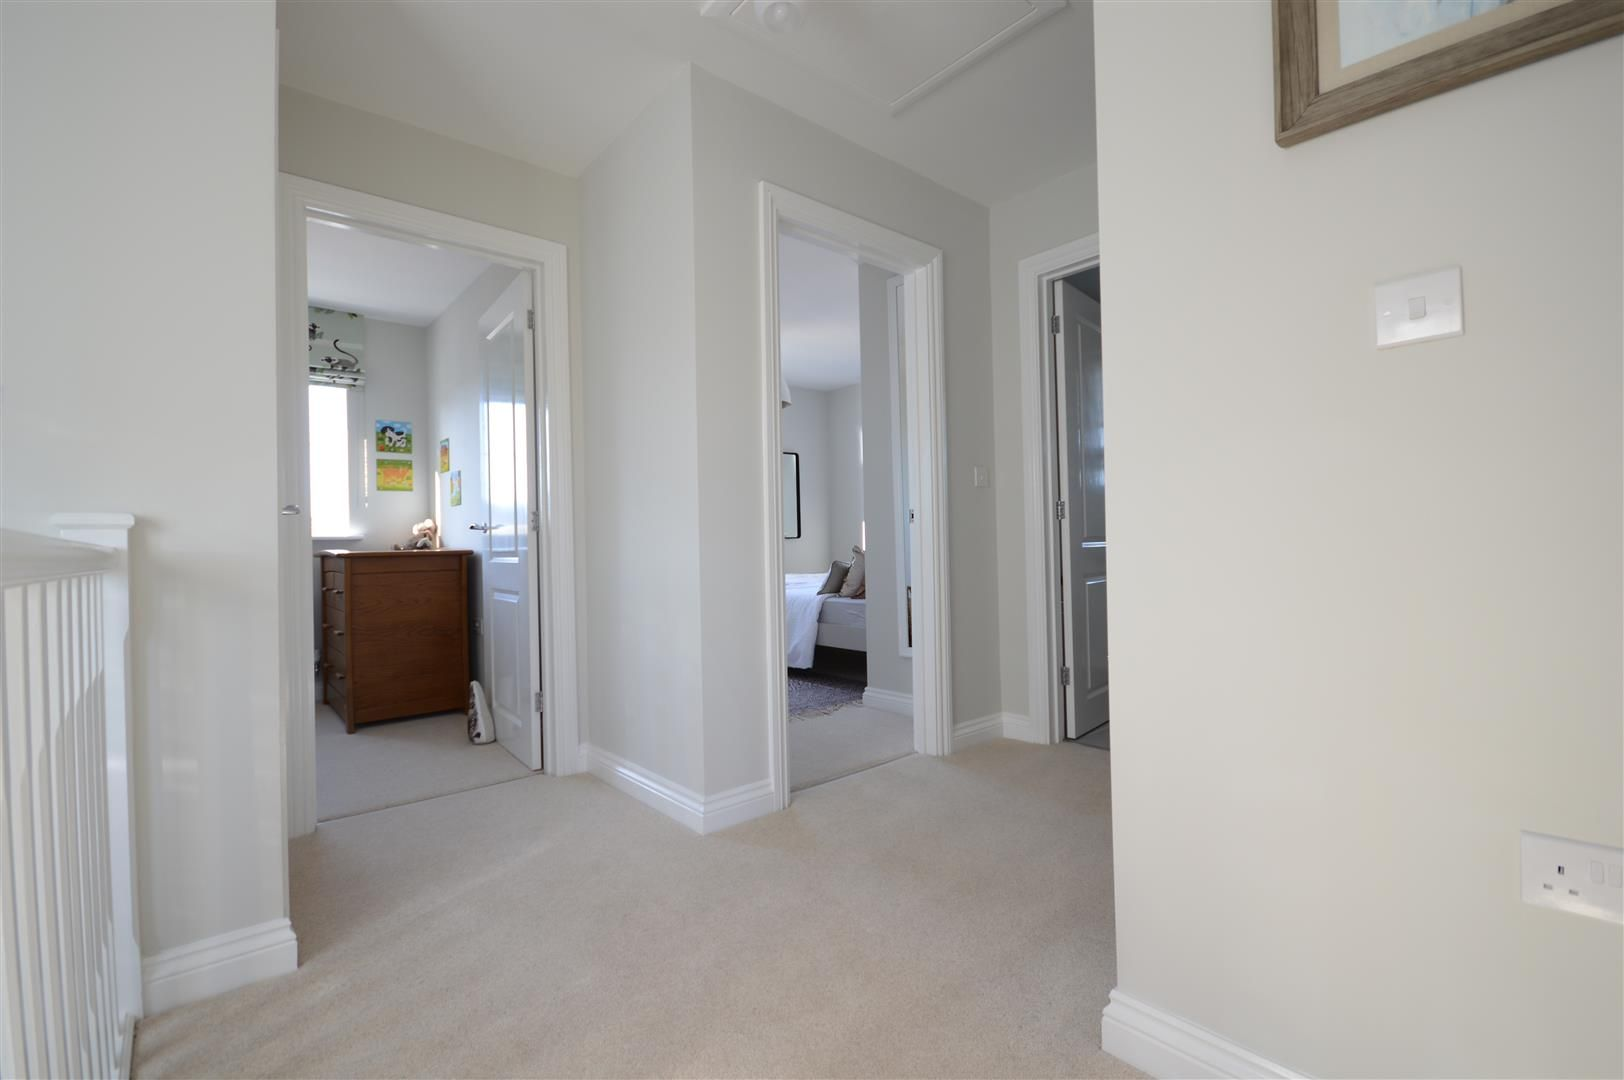 4 bed detached for sale in Kingstone 6